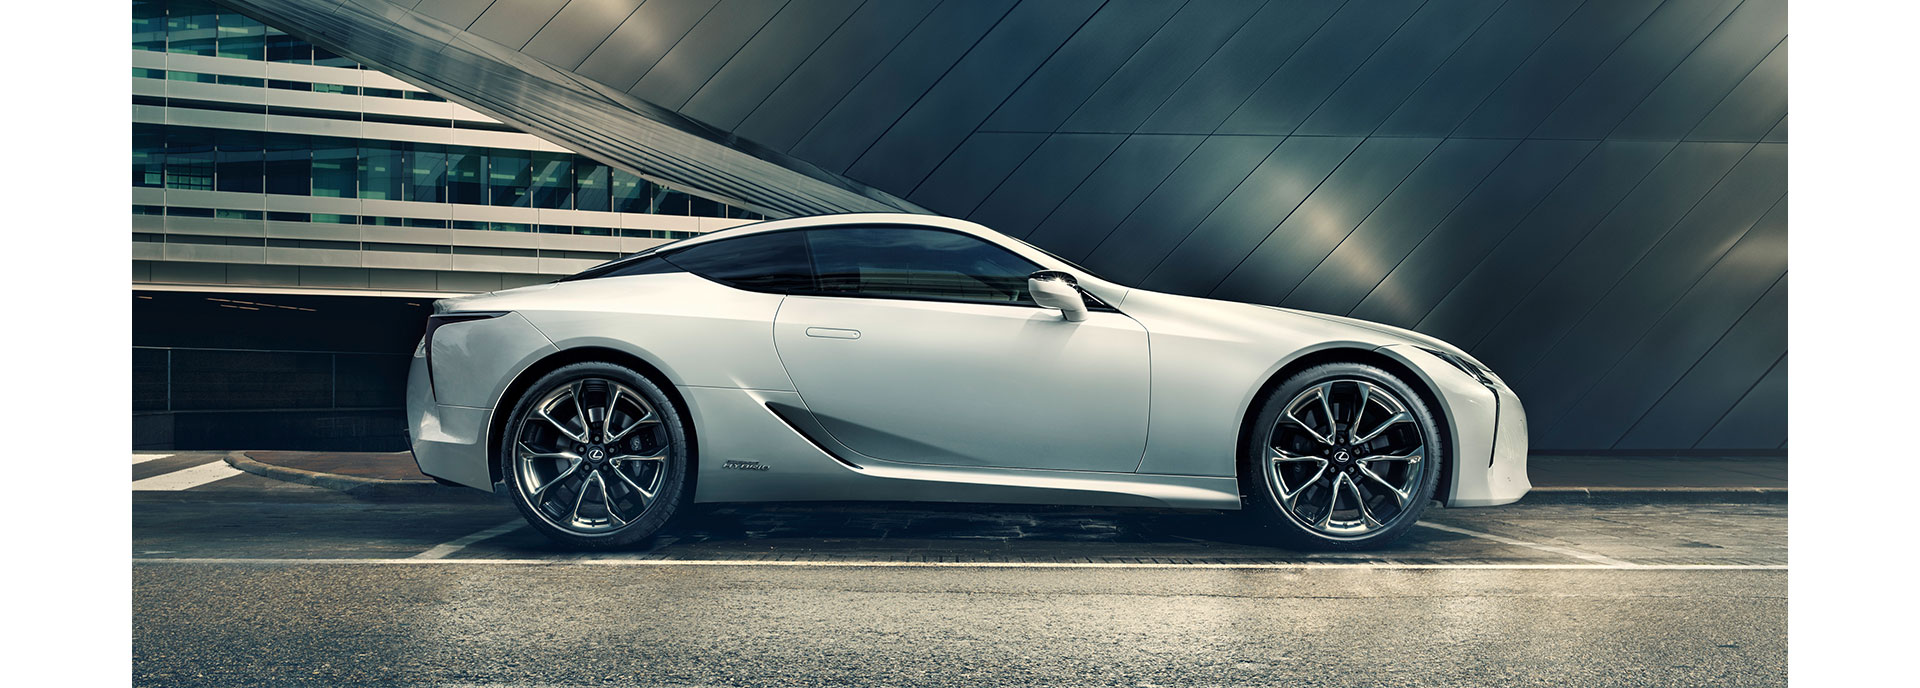 2017 Lexus LC Unmistakable Profile